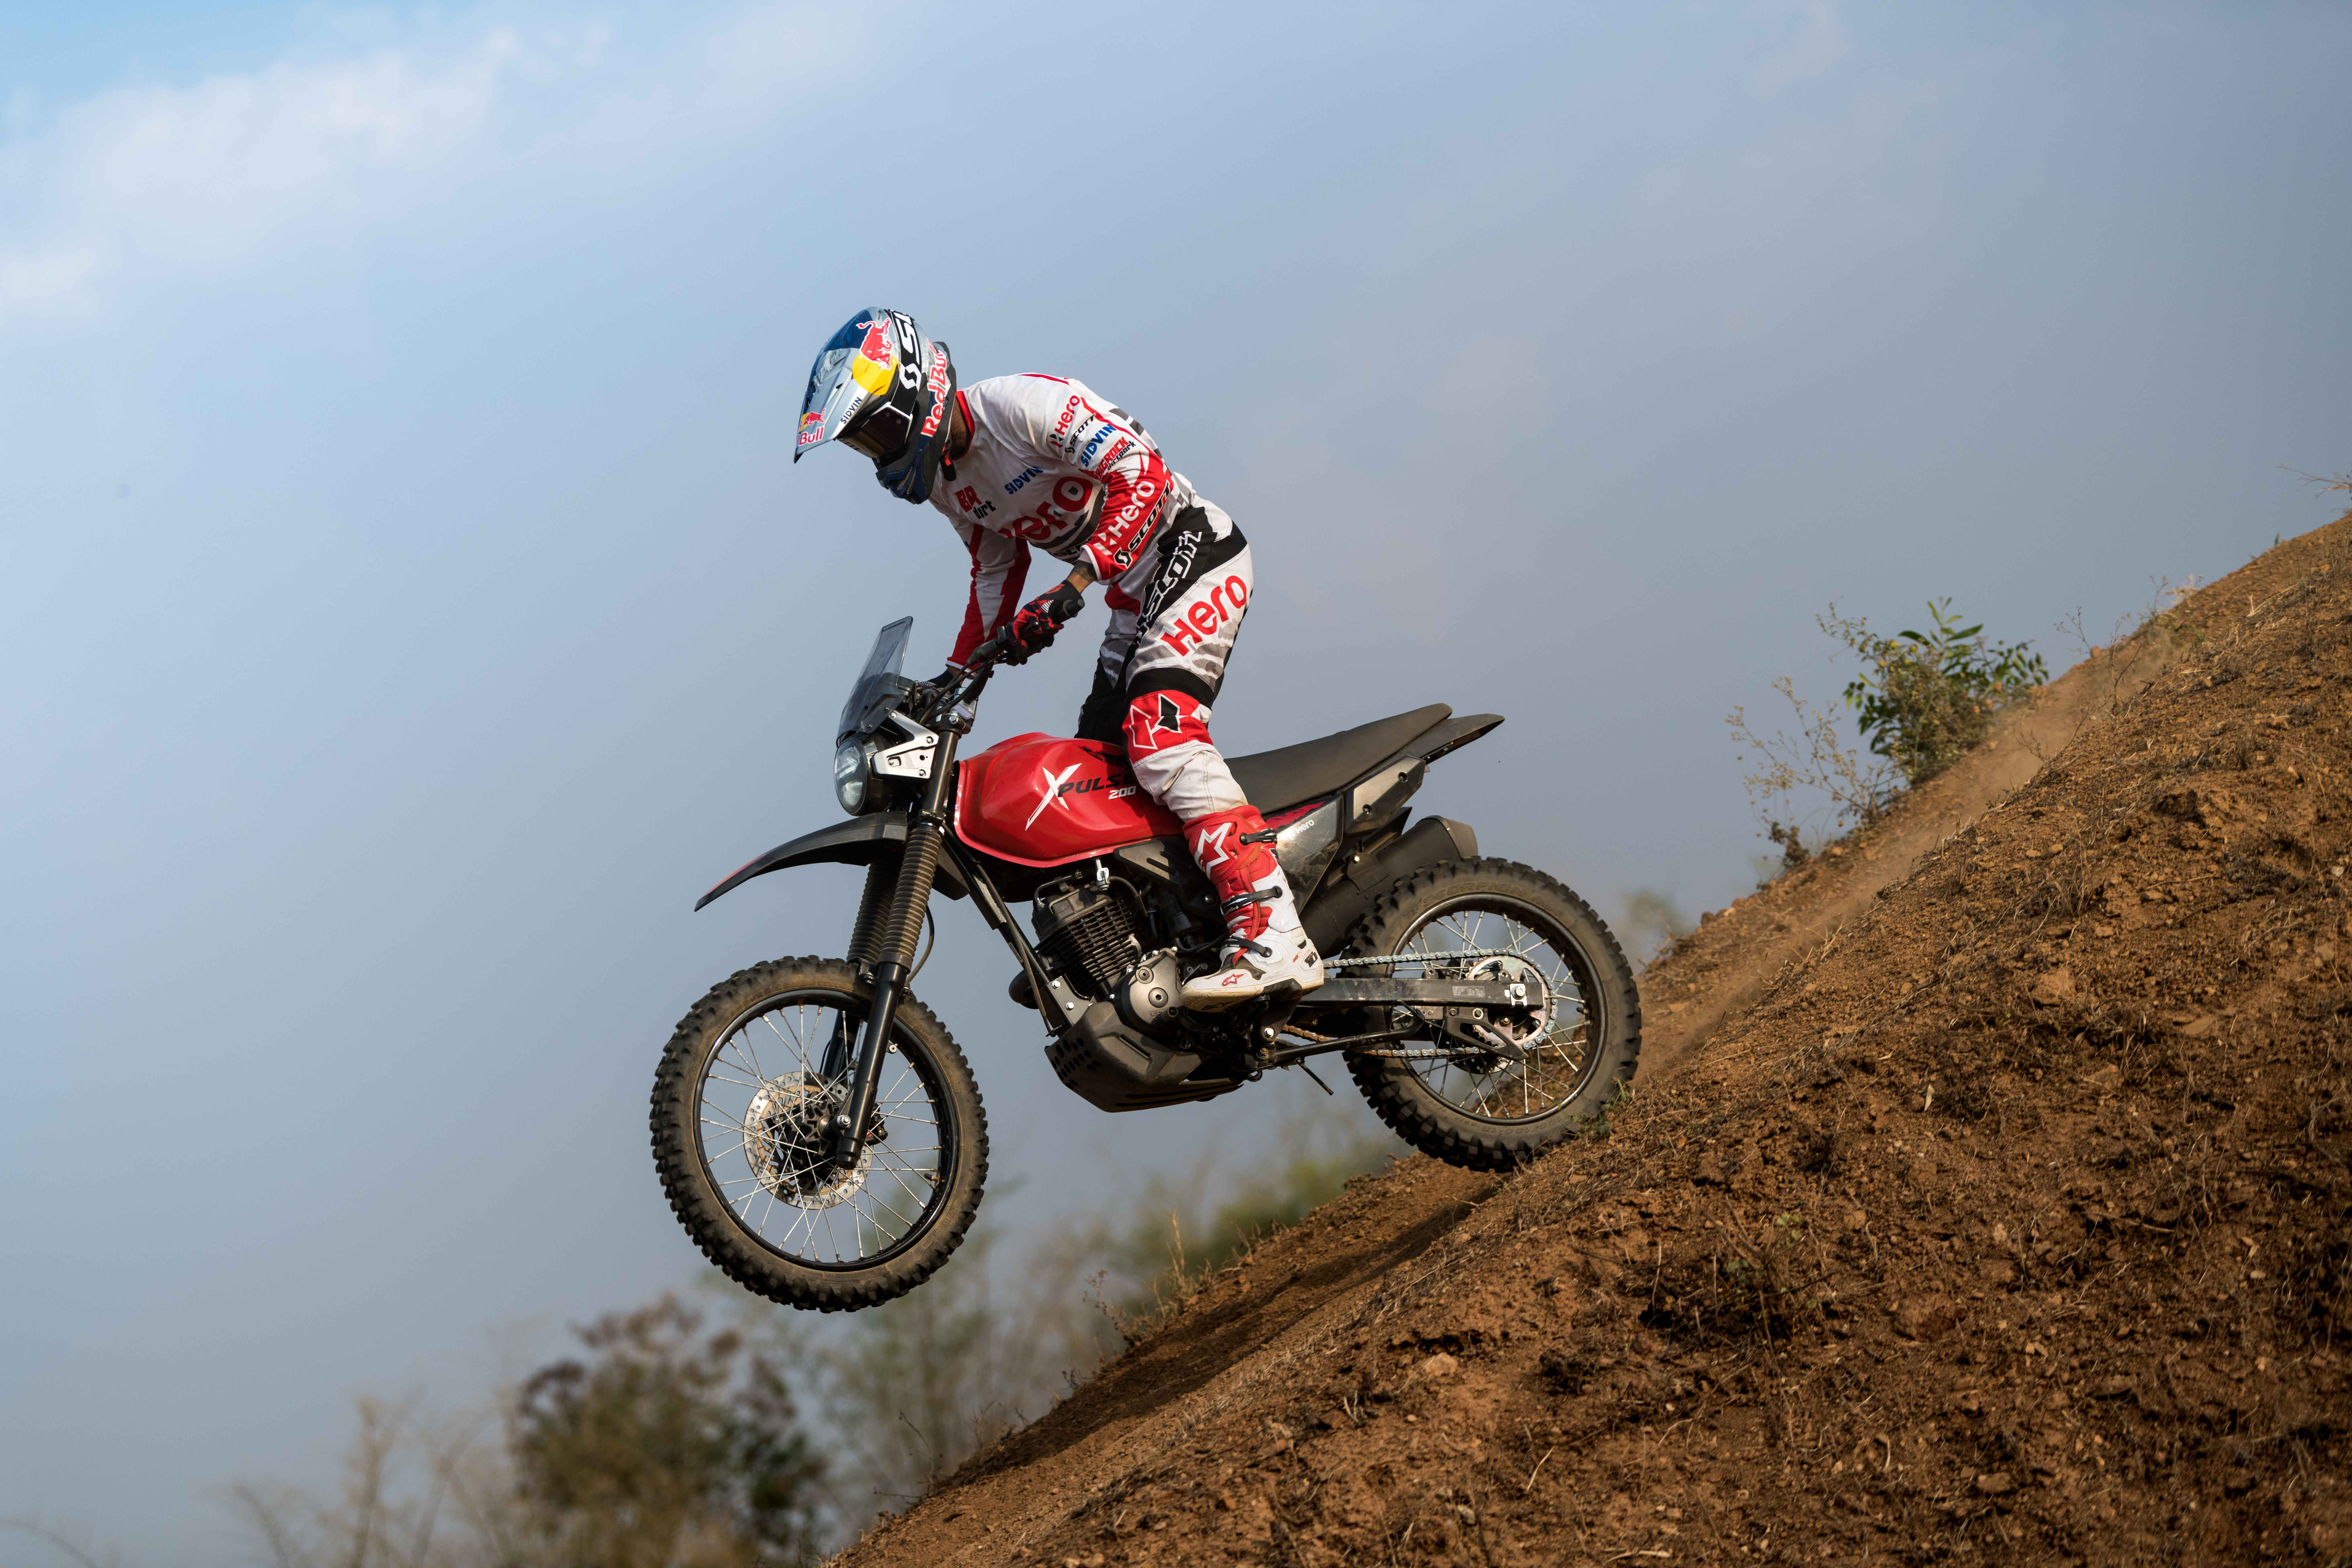 Bangalore to witness first edition of Red Bull Ace Of Dirt